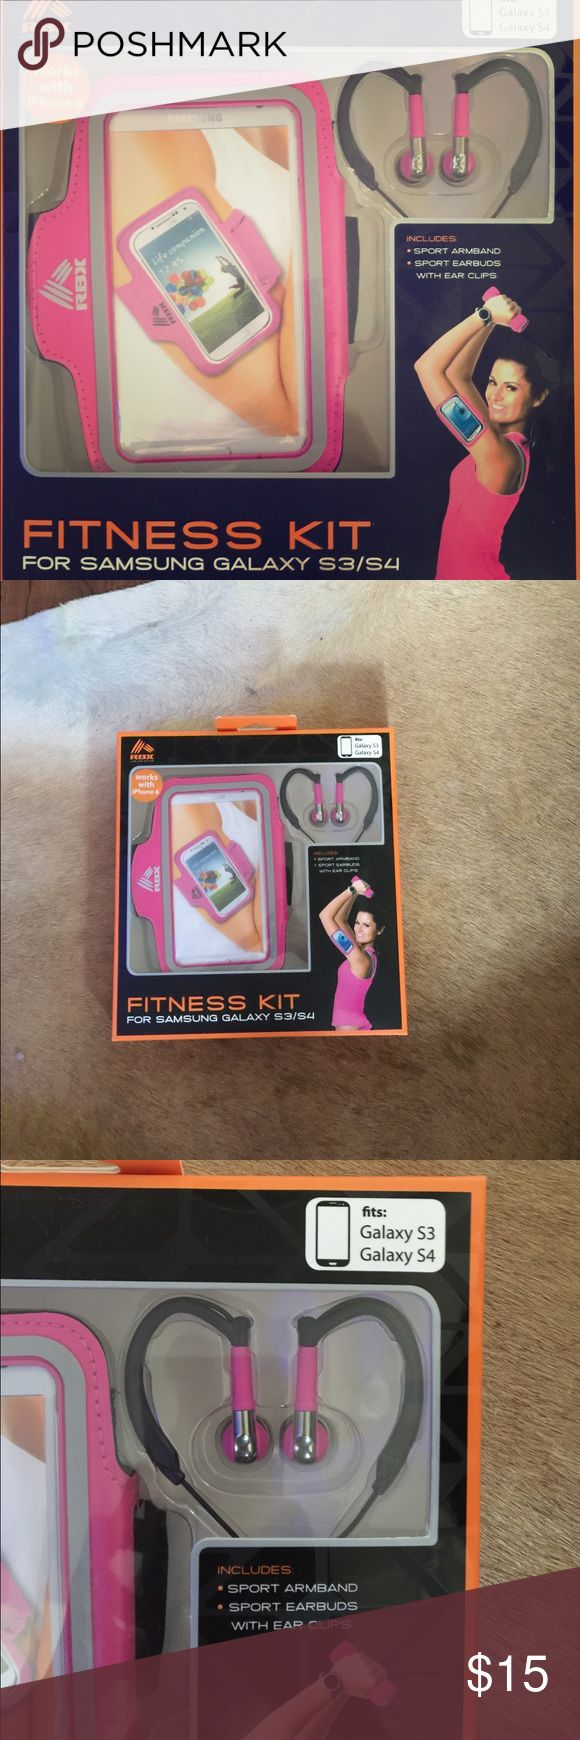 Fitness kit👟🎉🏋🏼 New fitness kit includes in pink sports arm band, ear buds with ear clip to keep them in place while you workout. 🎉🏋🏼👍🏻 Fits iPhone 6, Galaxy S3 & Galaxy S4.👍🏻 Check out my other listings for more great items.😉💕 Bundle and save in shipping, plus get an additional discount!!!💰💕😝 RXB Accessories Phone Cases